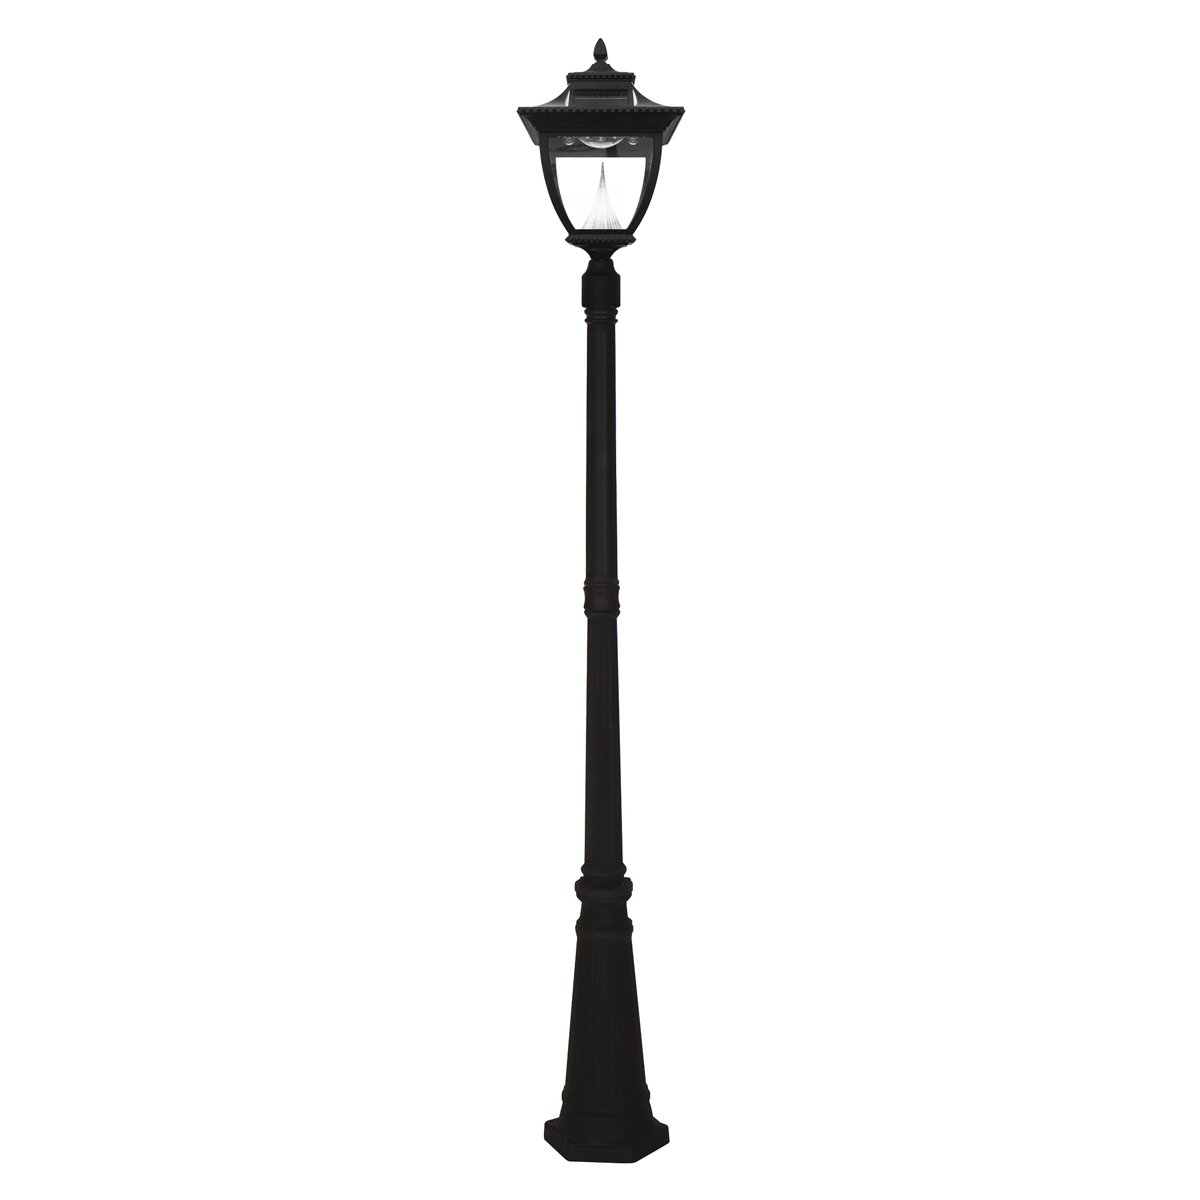 Top 10 Best Solar Lamp Post Light Reviews in 2021 8